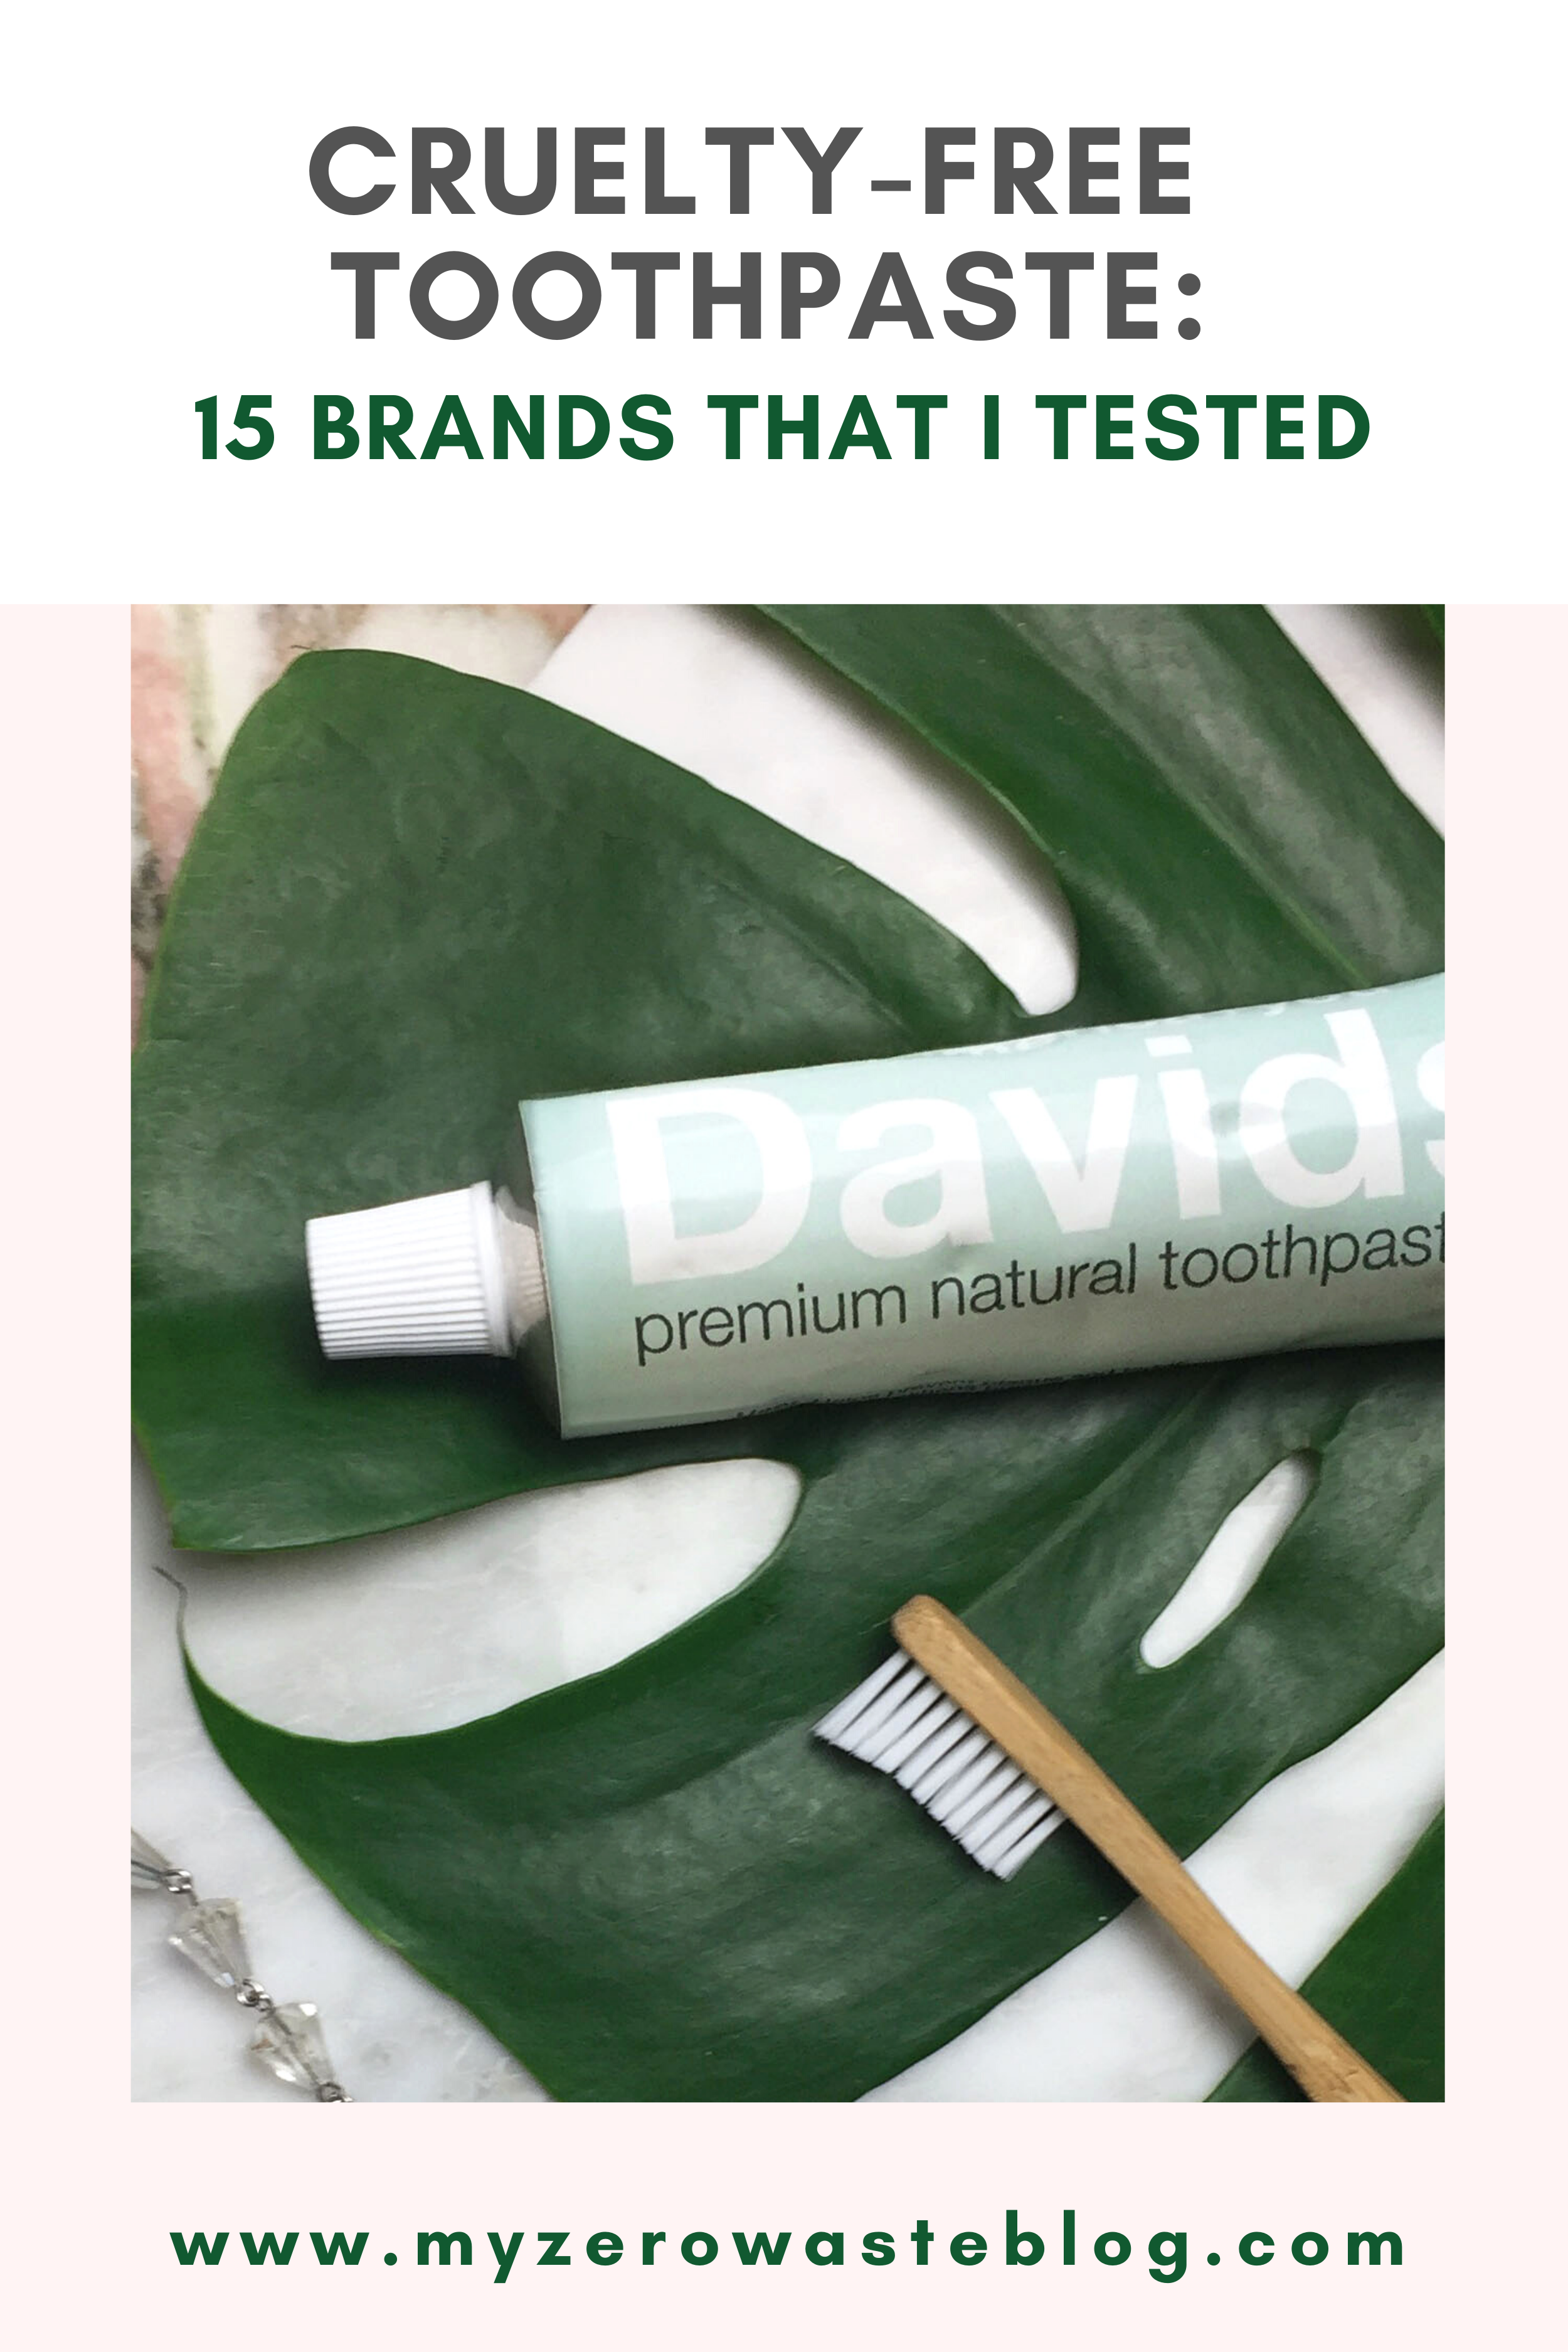 Cruelty Free Toothpaste 15 Brands That I Tested Zero Waste Blog